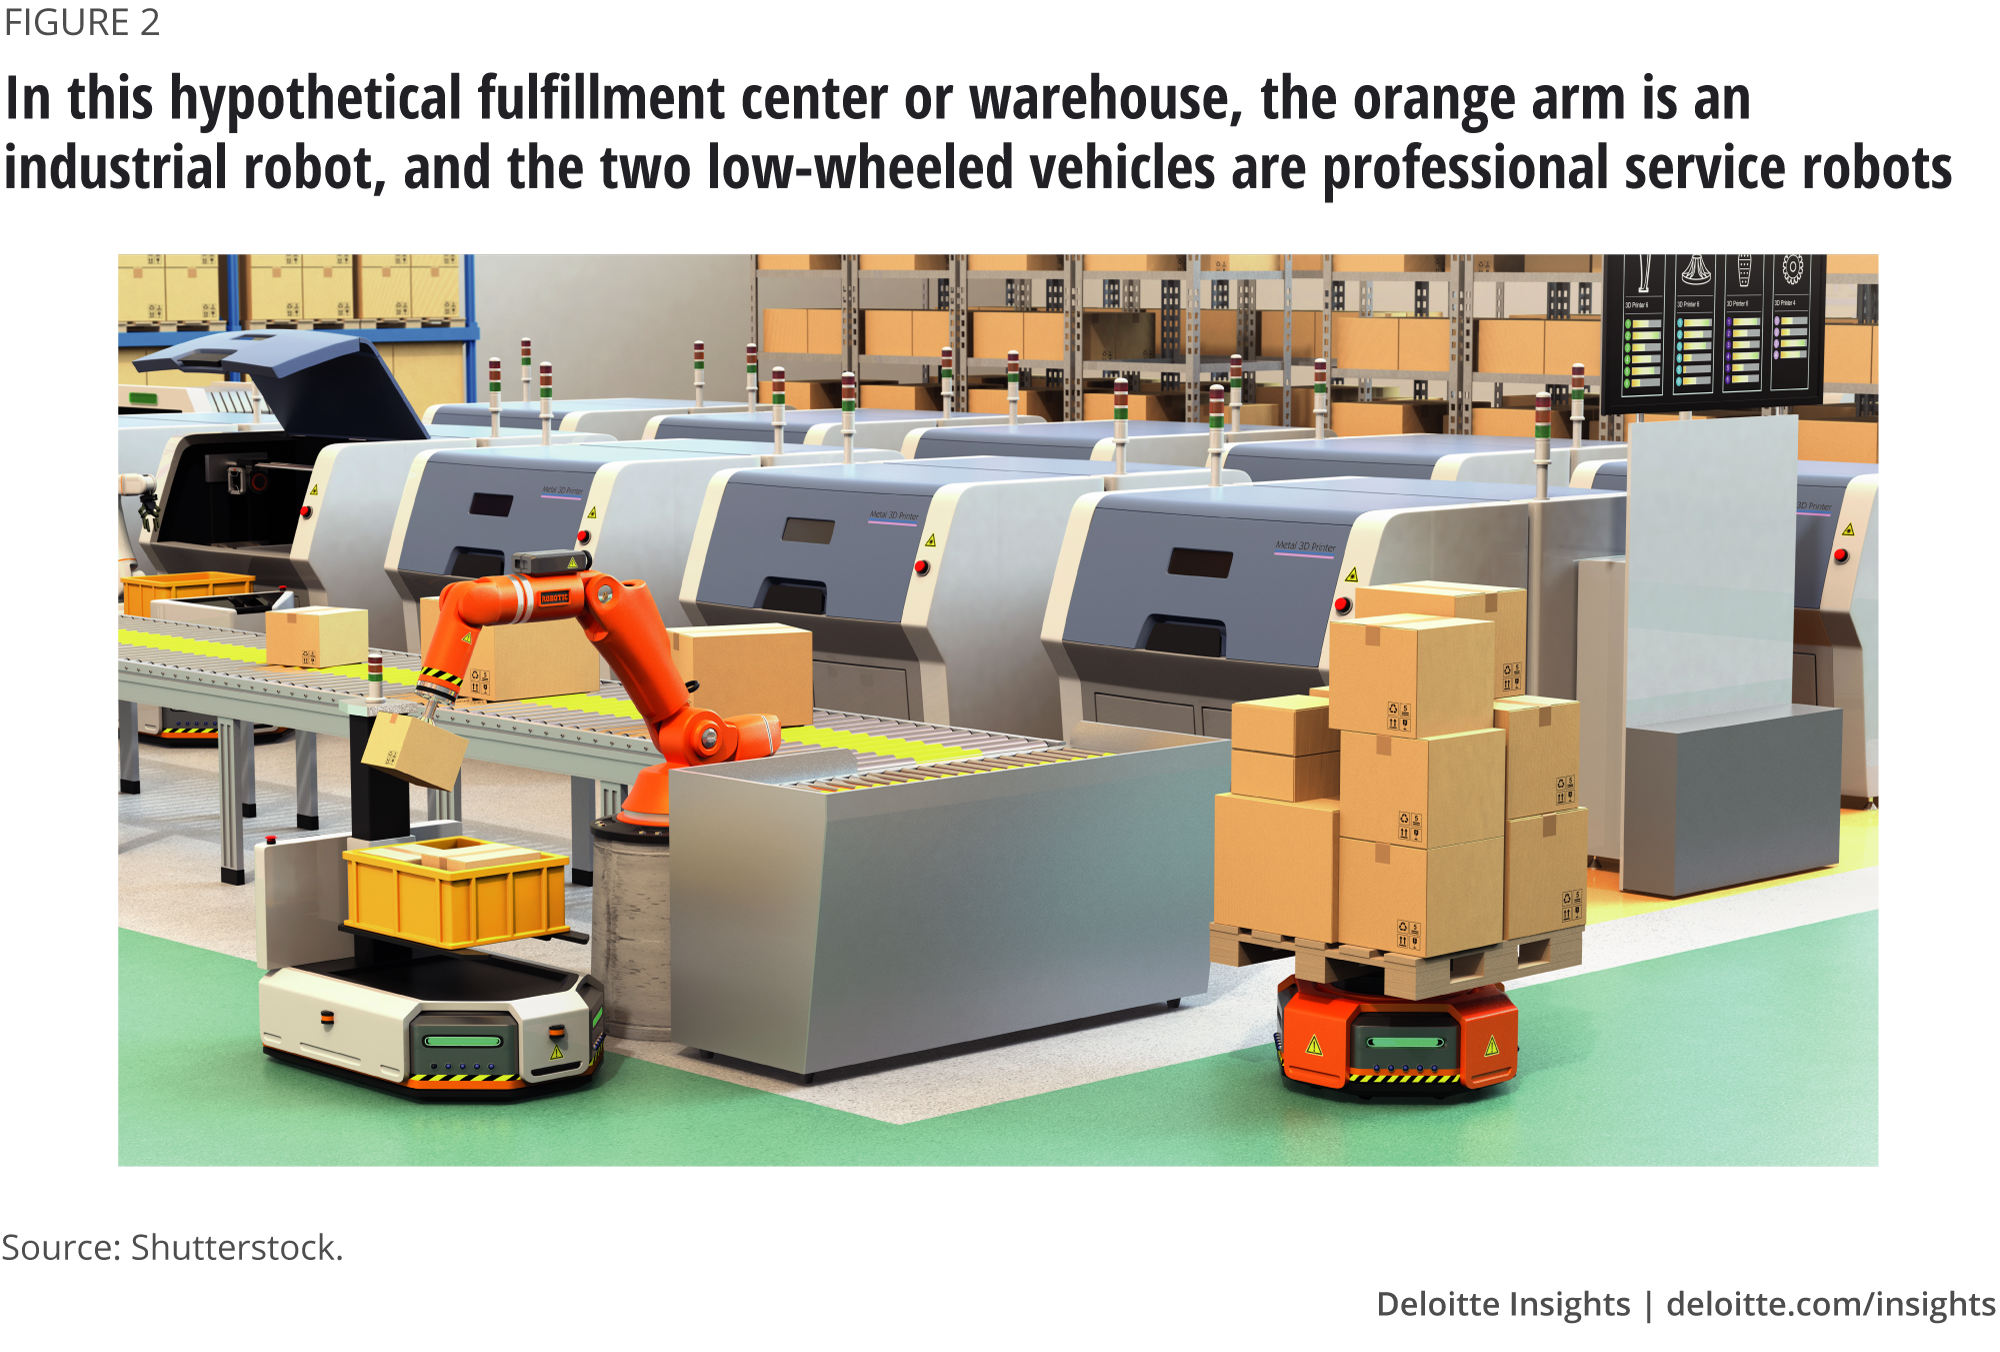 In this hypothetical fulfillment center or warehouse, the orange arm is an industrial robot, and the two low-wheeled vehicles are professional service robots